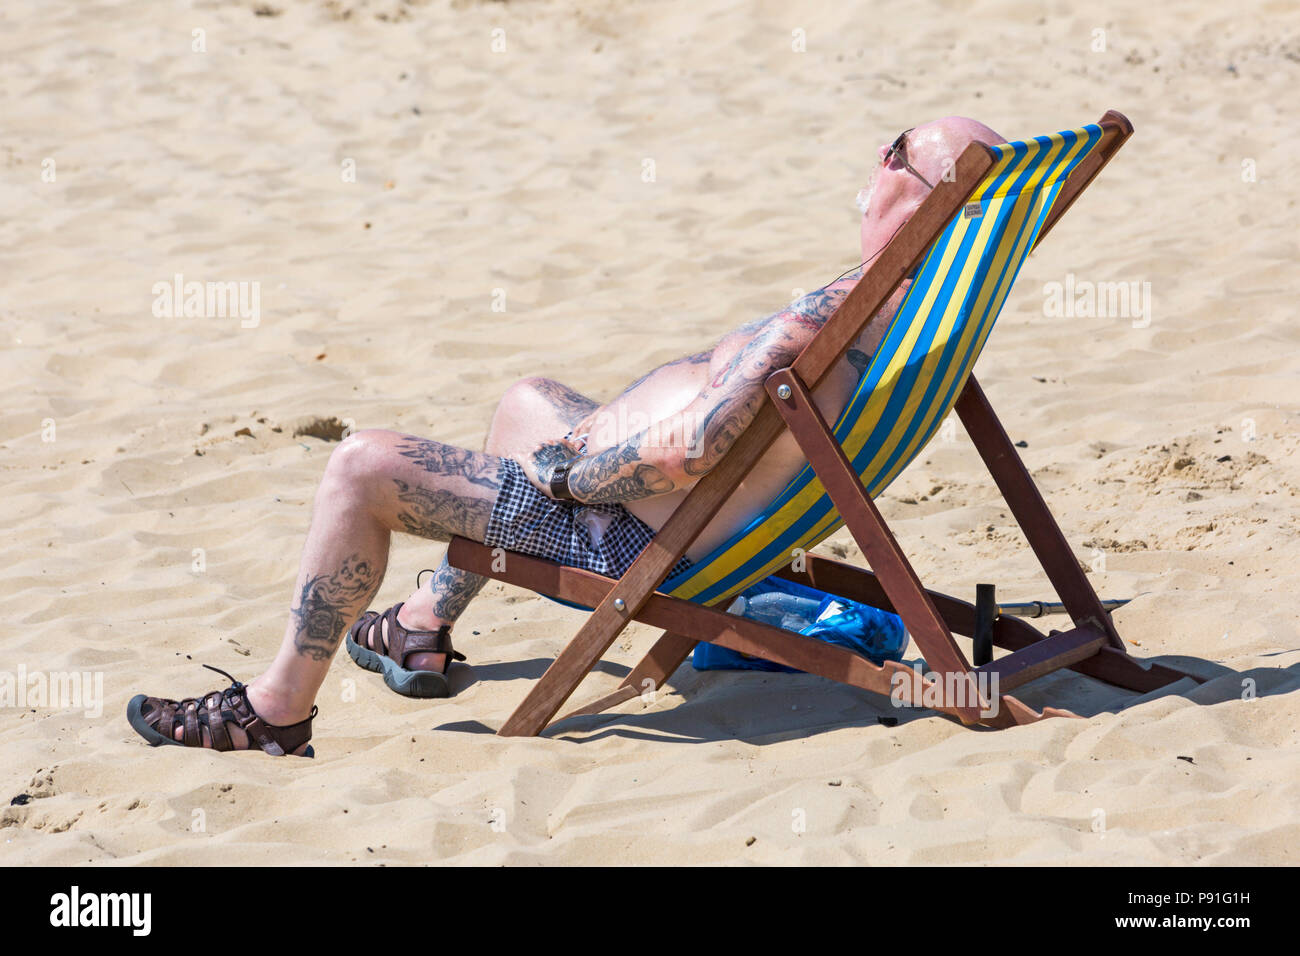 Bournemouth, Dorset, UK. 14th July 2018. UK weather: The heatwave continues with another hot sunny day, as sunseekers make the most of the glorious weather and head to the seaside at Bournemouth beaches. Man sunbathing in deckchair. Credit: Carolyn Jenkins/Alamy Live News - Stock Image